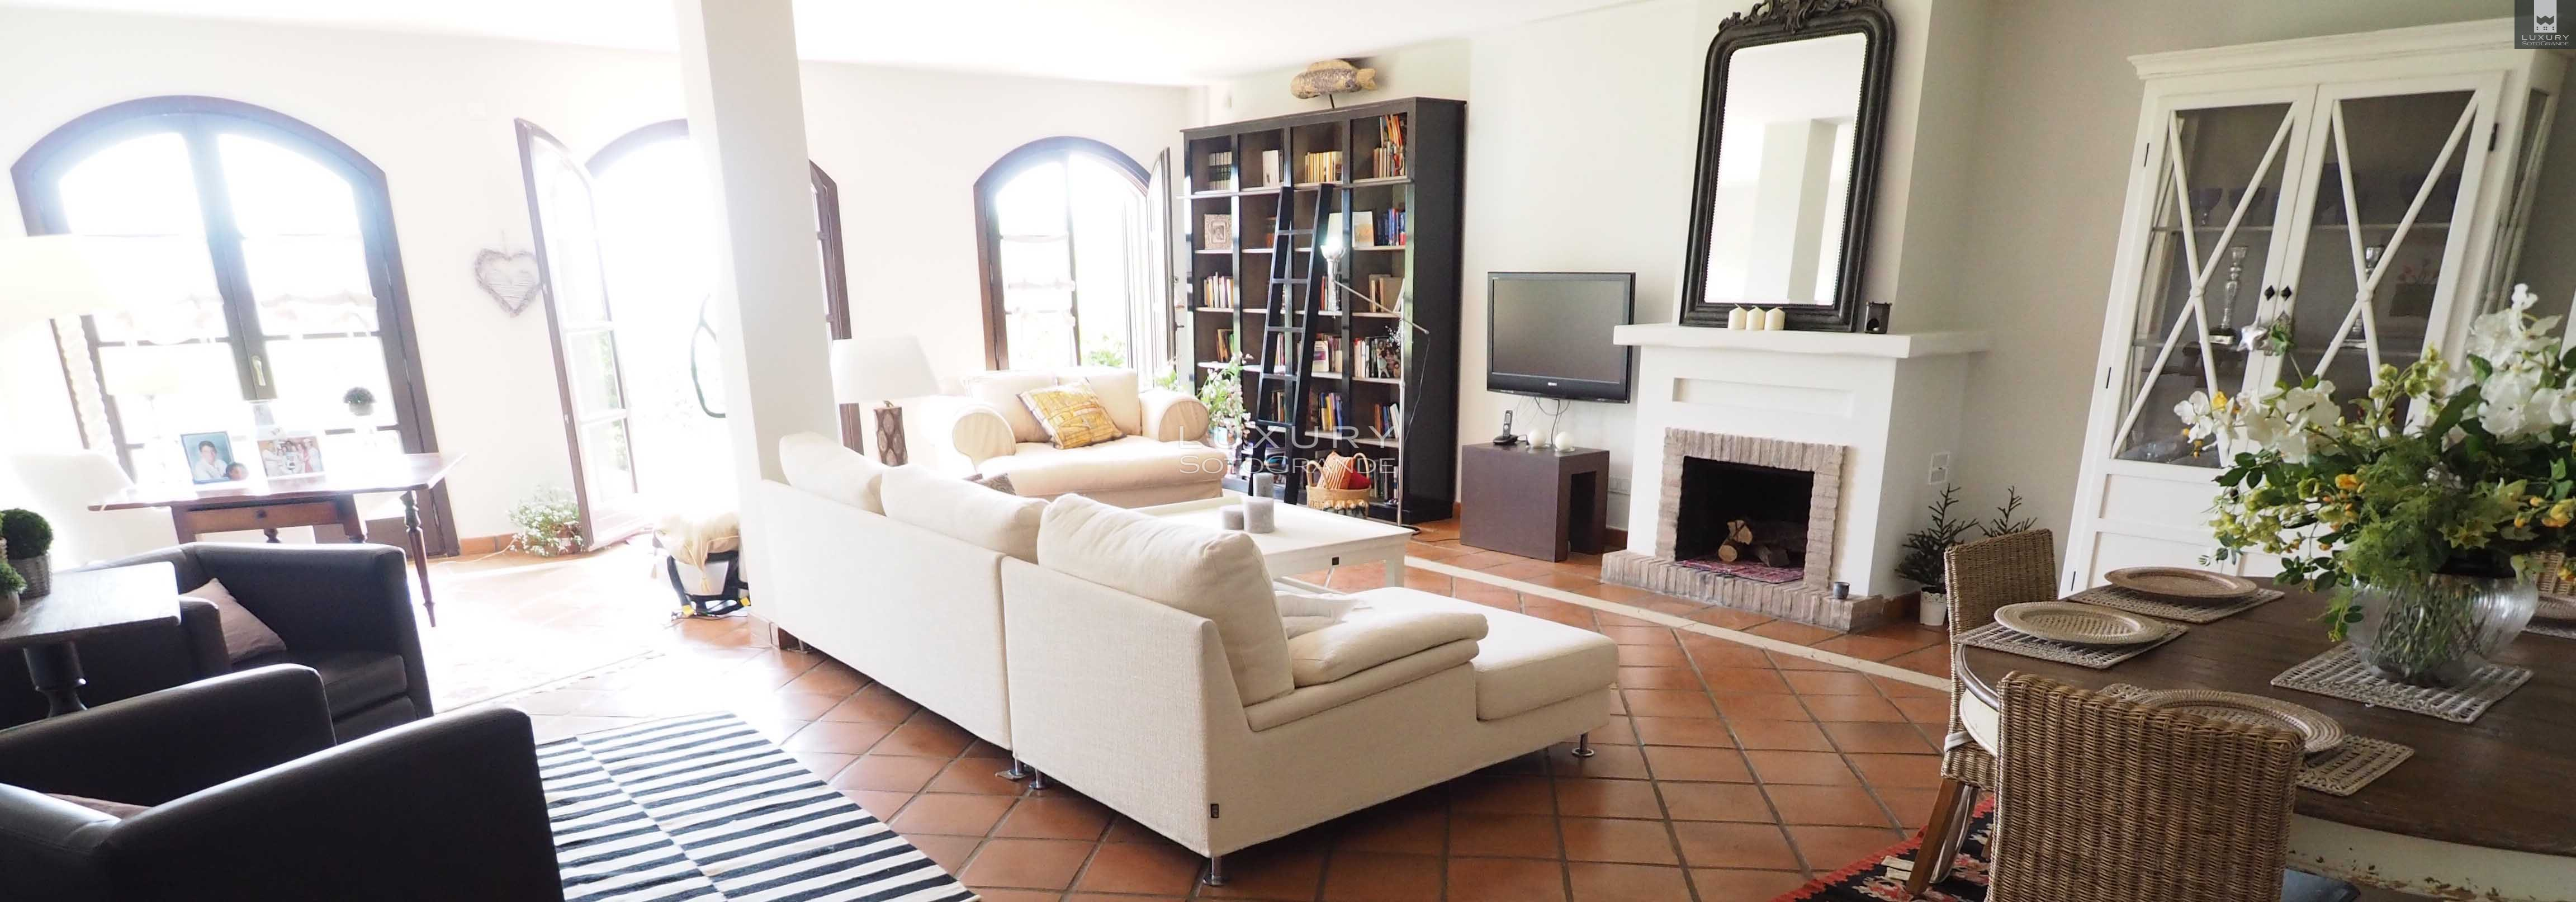 Spectacular townhouse for rent in Cortijos de la Reserva Sotogrande